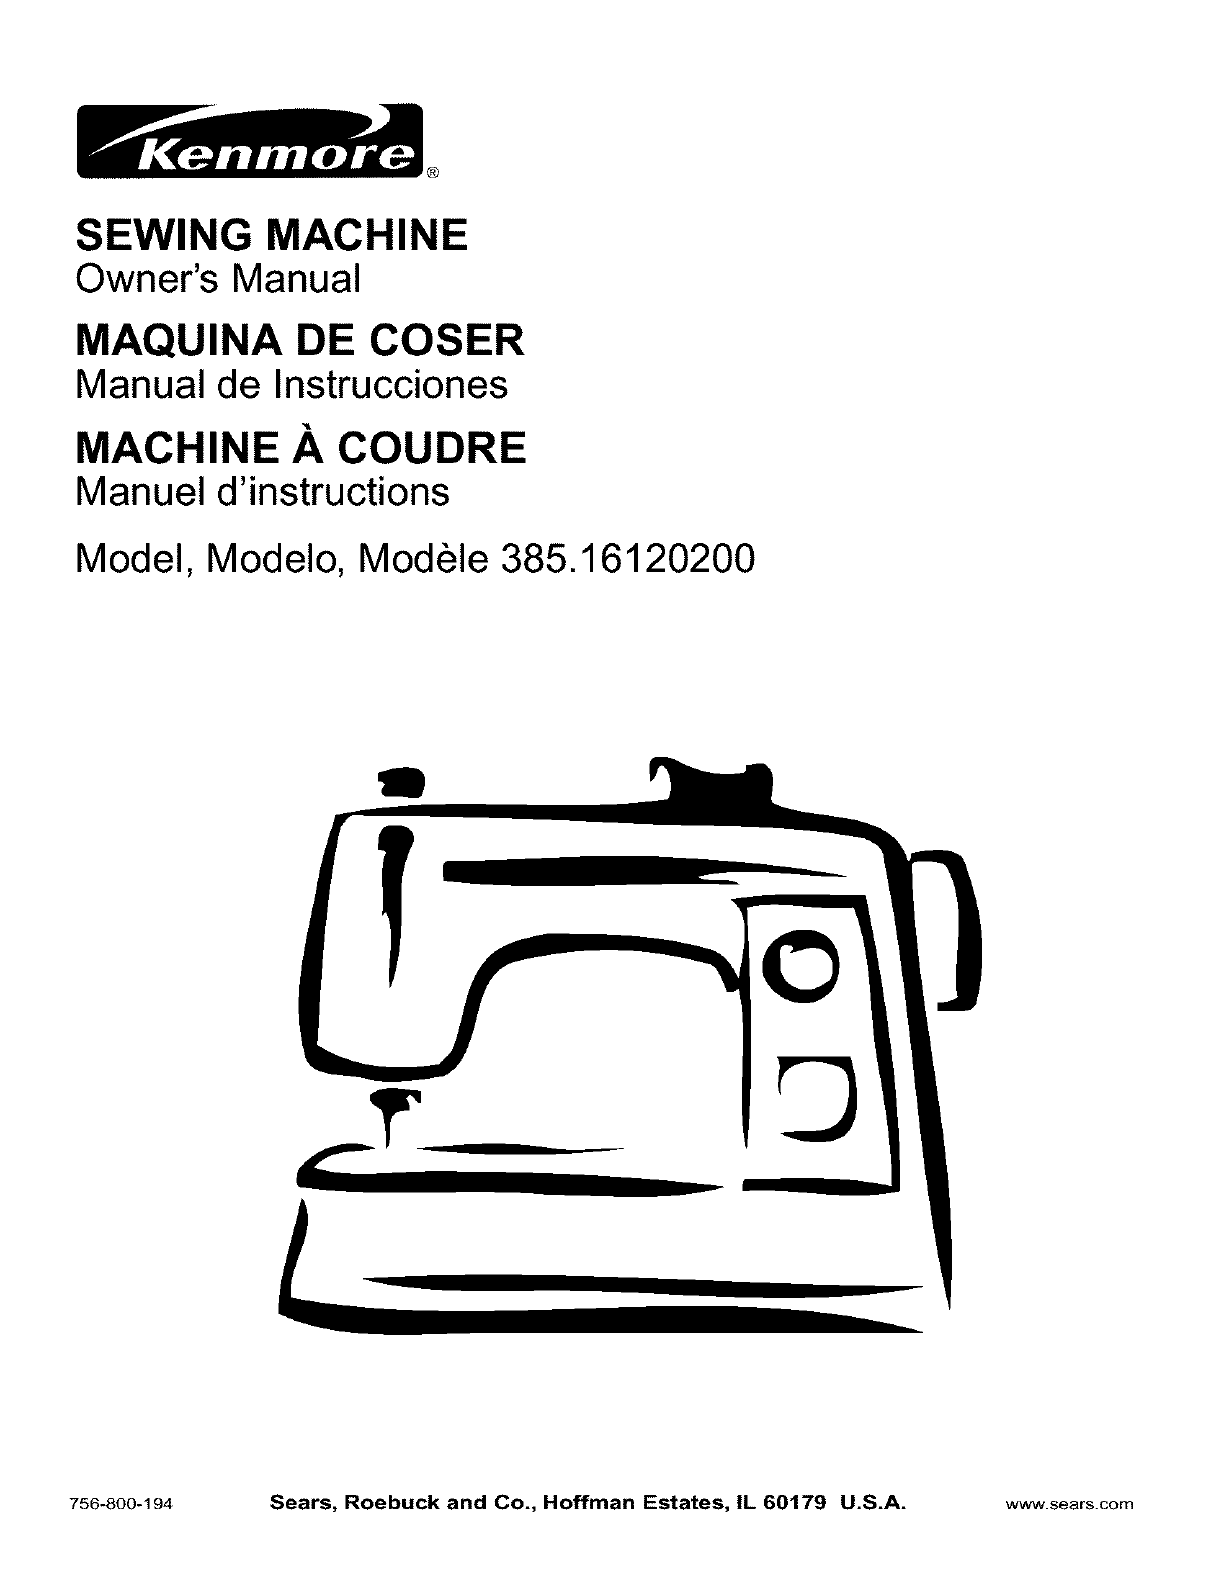 kenmore sewing machine 385 16120200 user guide manualsonline com rh camera manualsonline com Brinkmann Smoker Cooking Time Chart Kenmore Smoker Parts